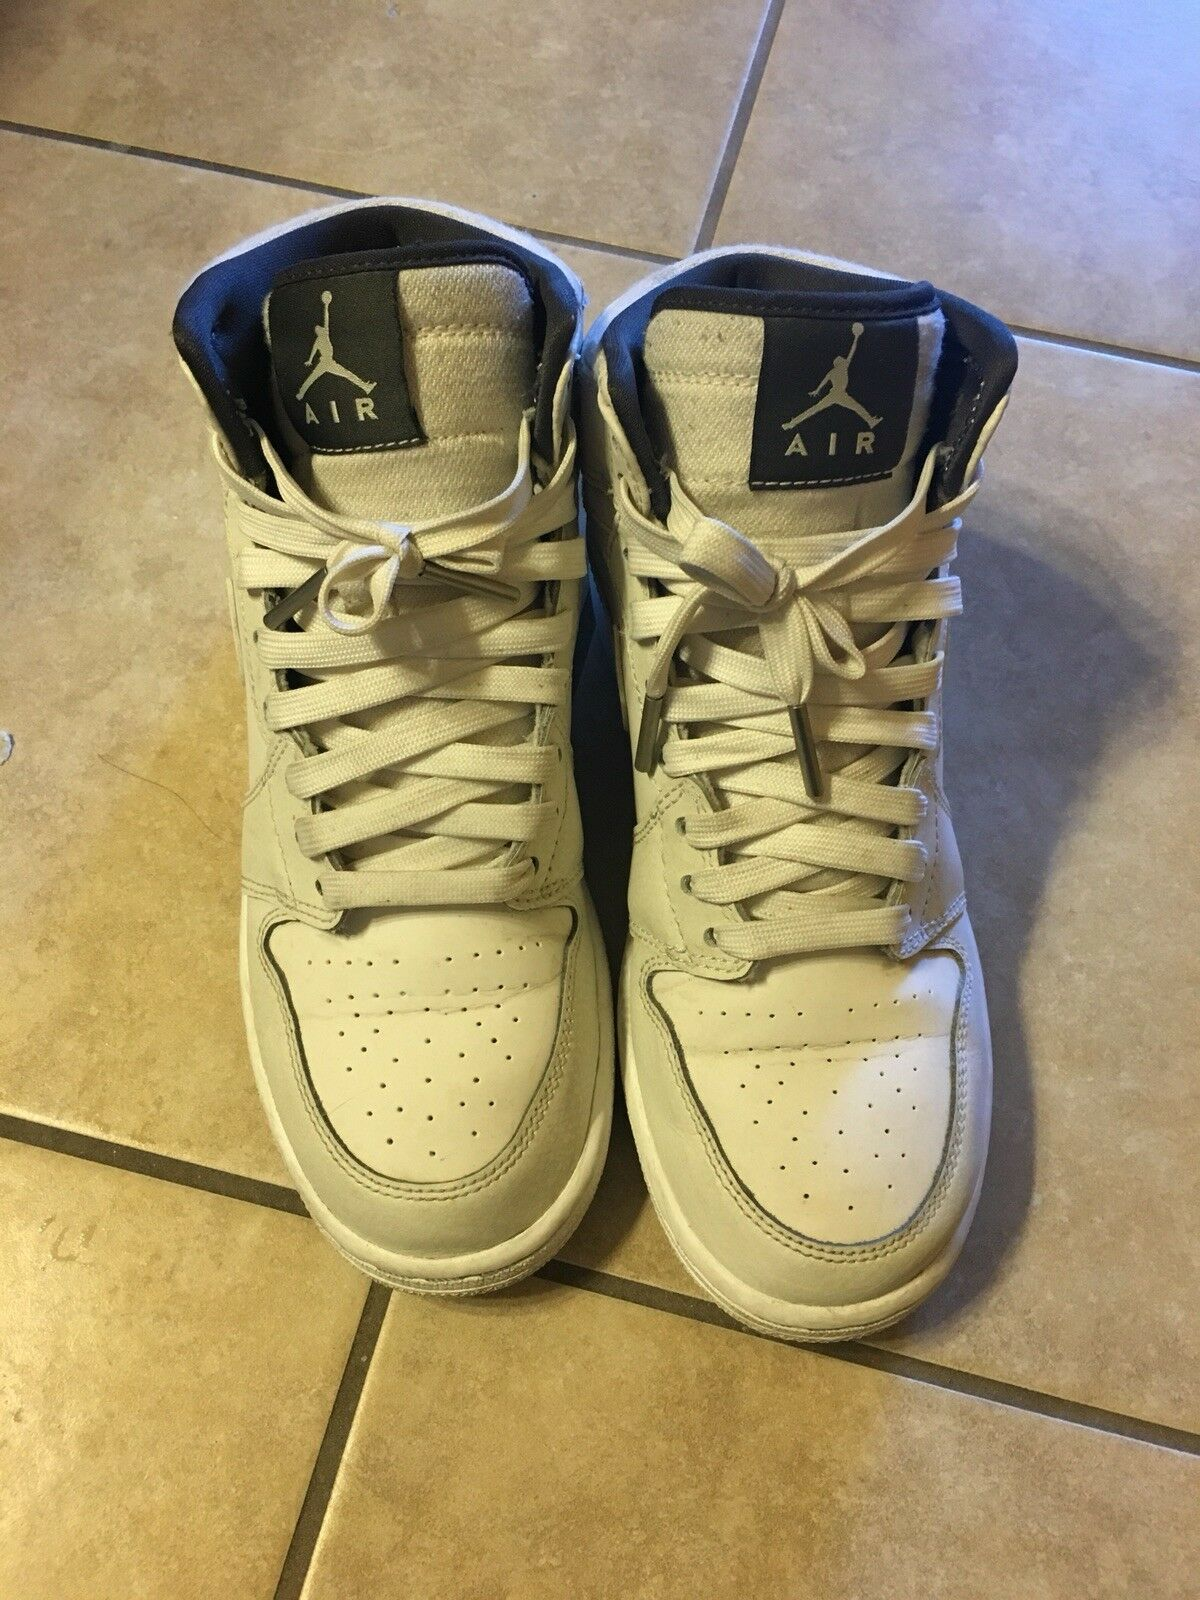 Nike Air Jordan 1 One Retro Mid in Creme The most popular shoes for men and women